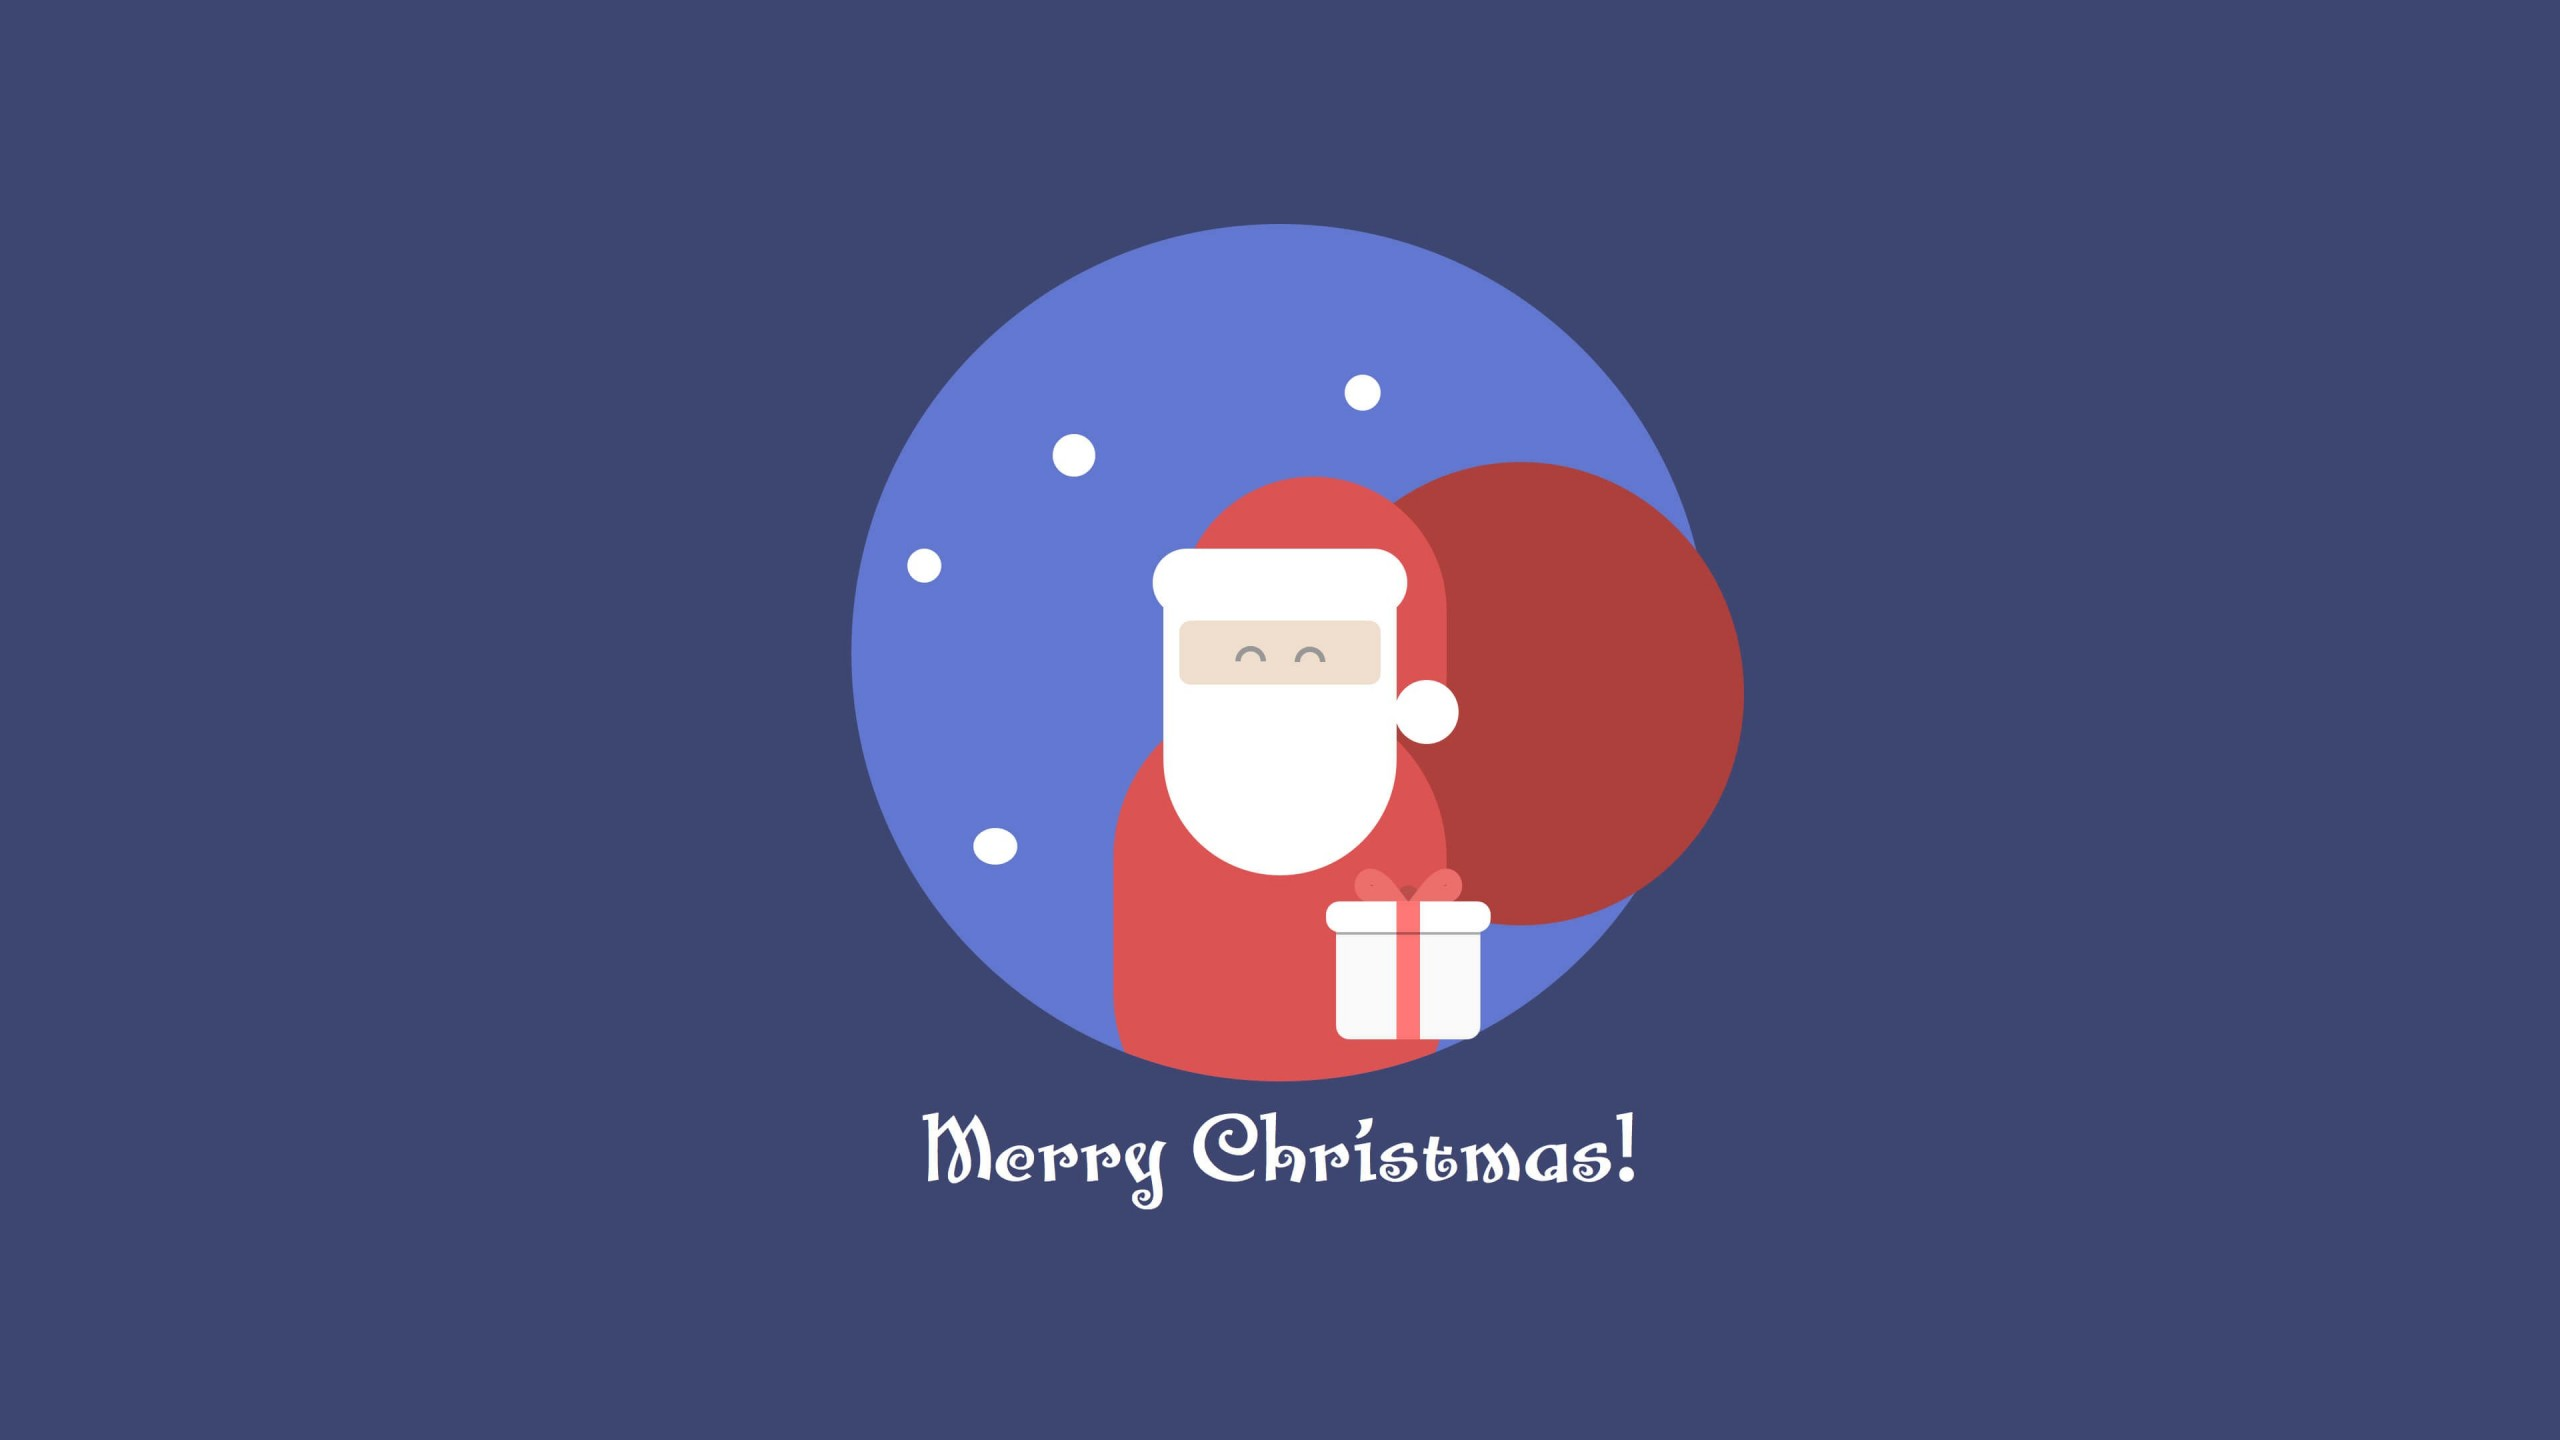 Flat Santa Wallpaper for Social Media YouTube Channel Art